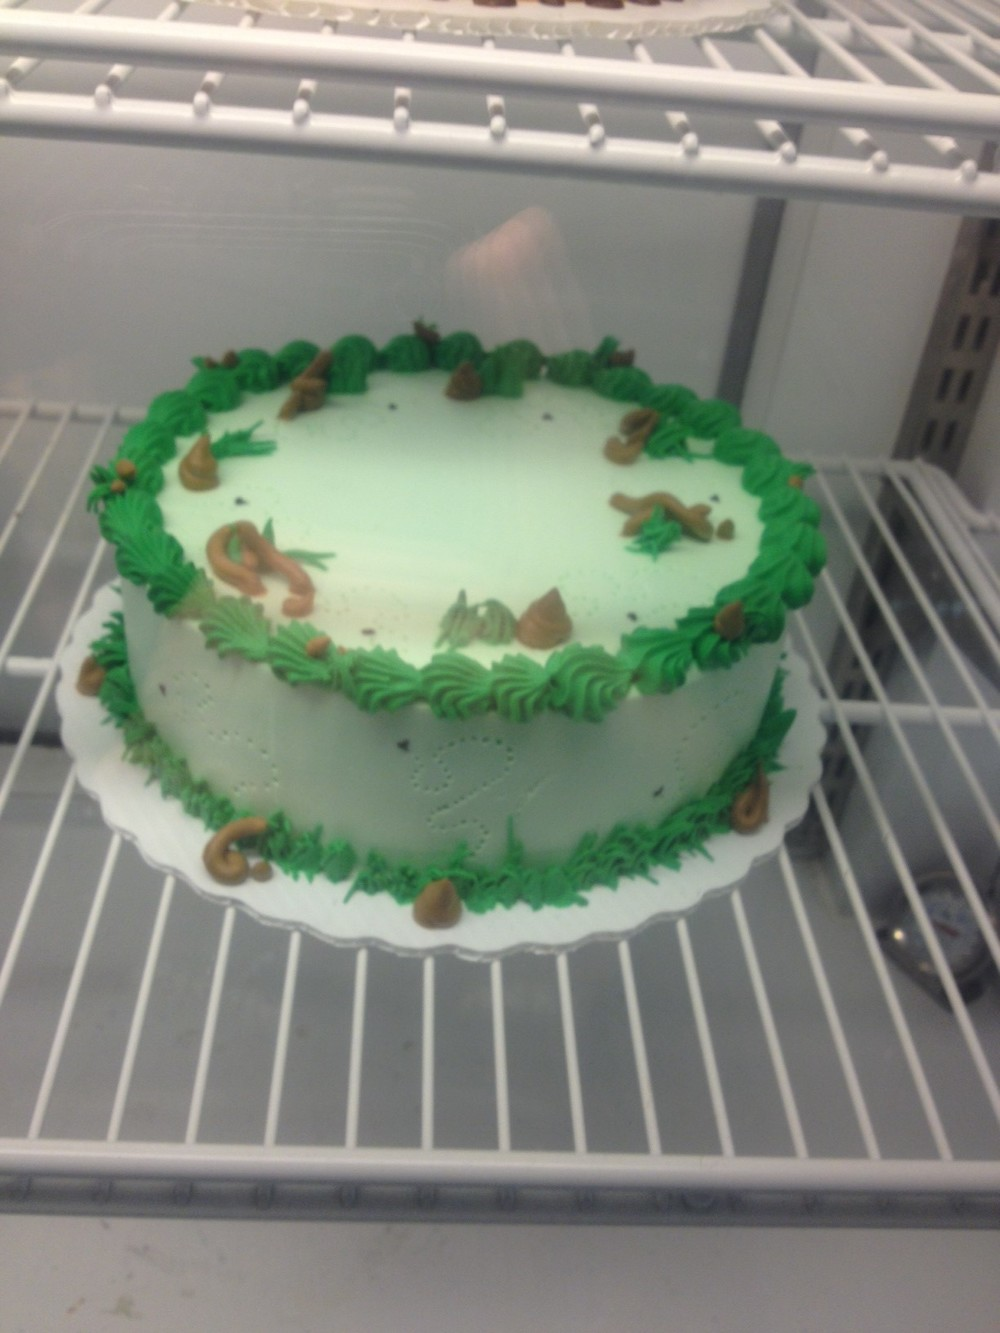 A Crappy Cake